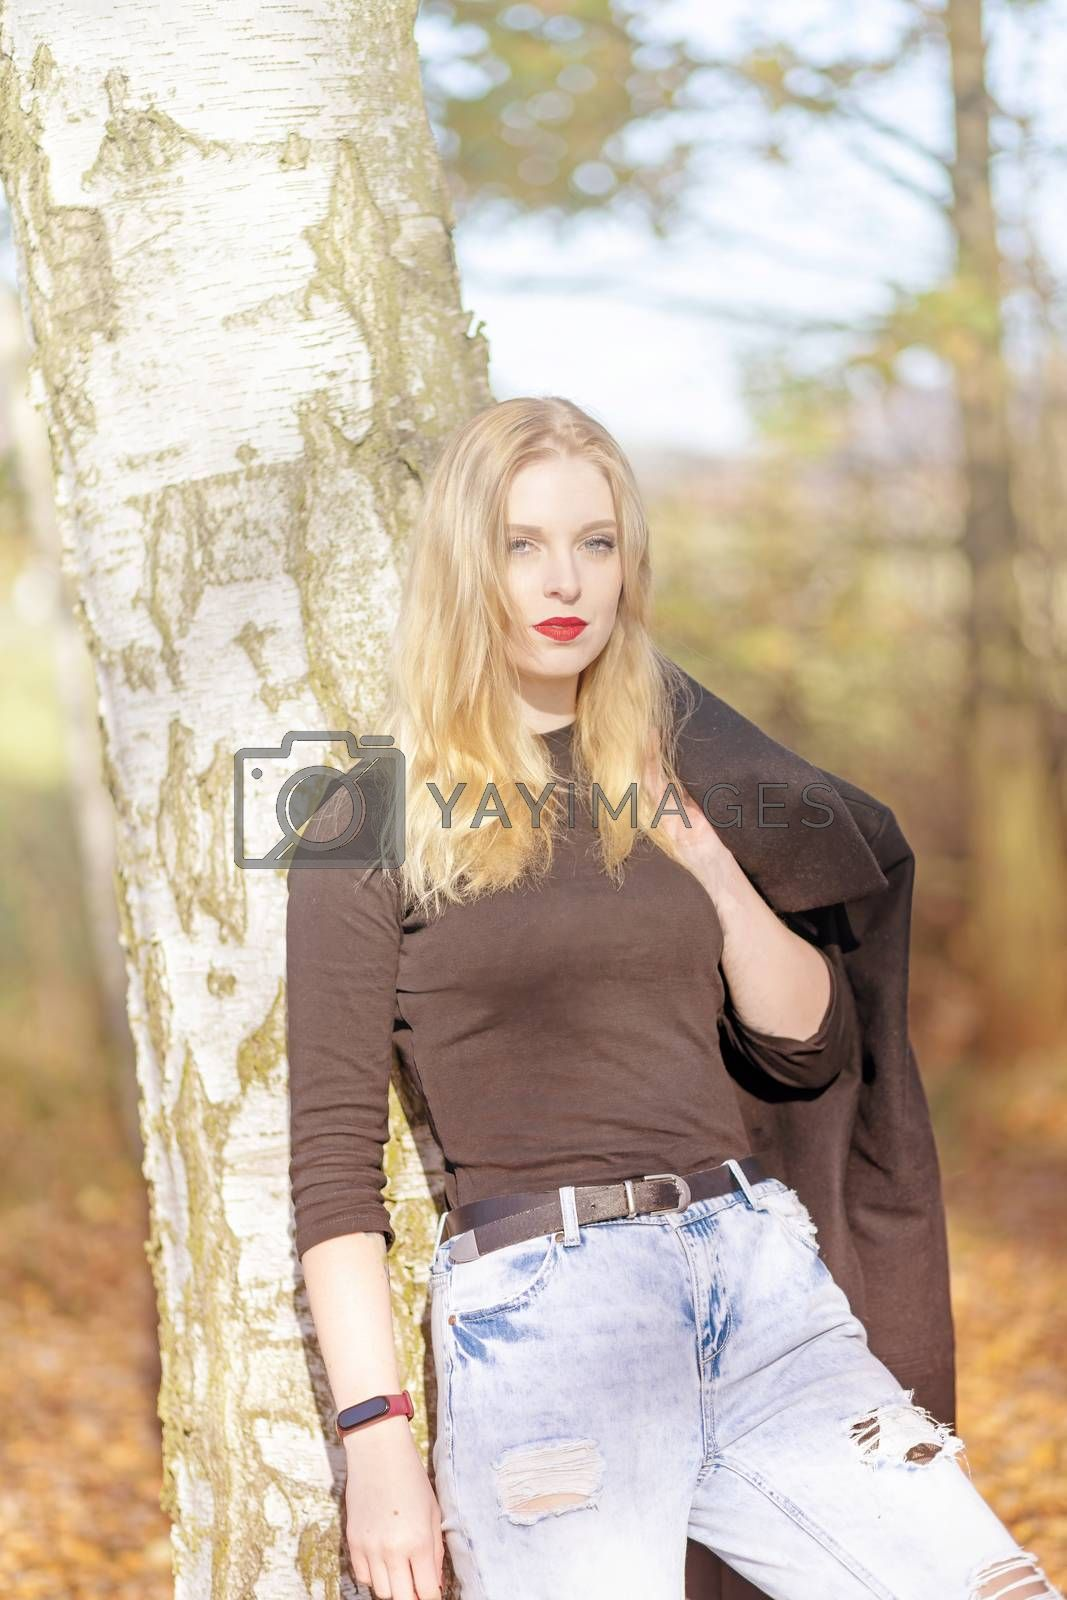 Portrait of attractive girl leaning on a tree trunk in autumn park. The girl is looking at the camera. Photo in soft light autumn colors.